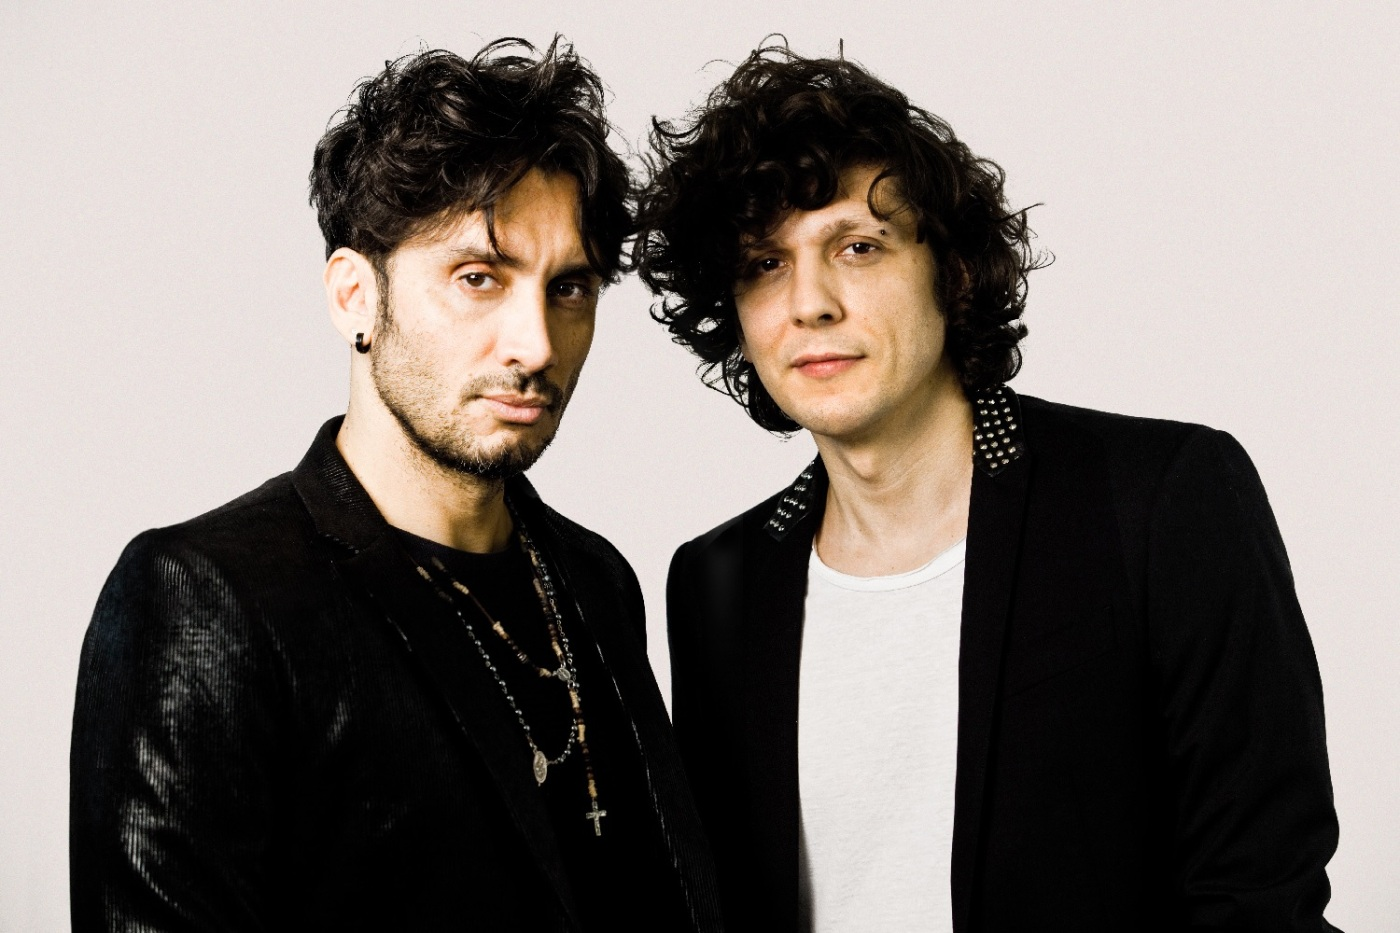 Ermal Meta and Fabrizio Moro